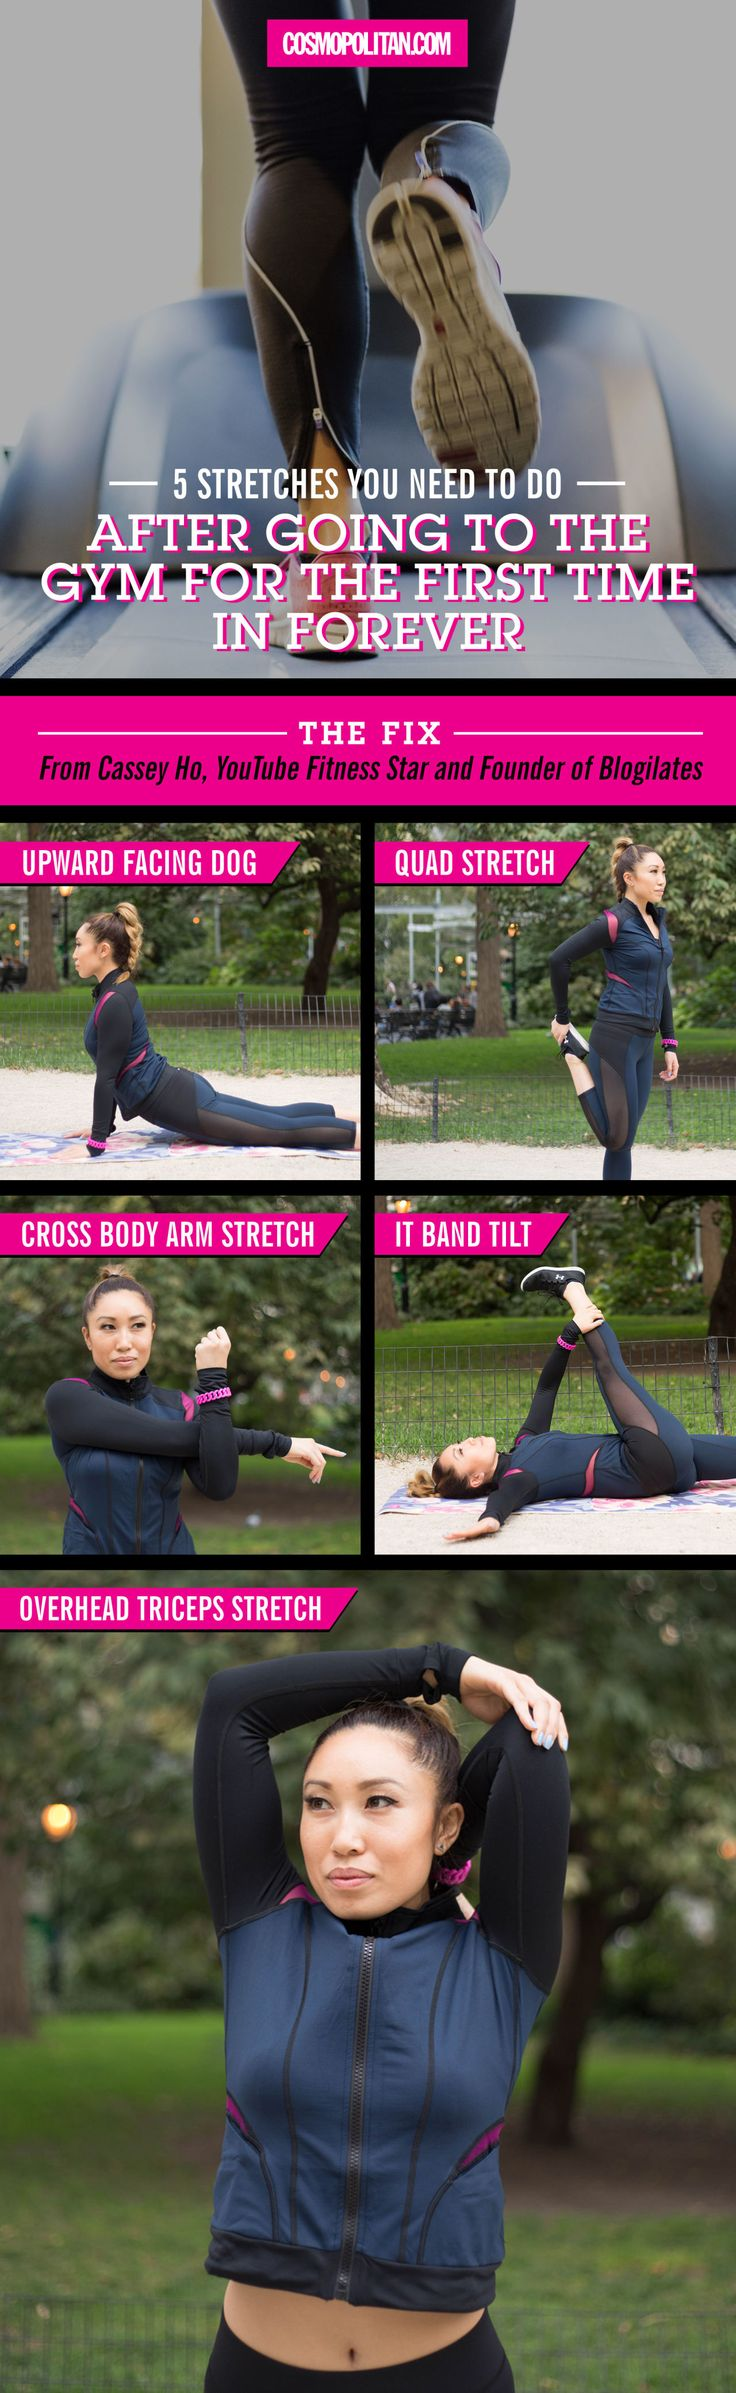 AFTER GYM STRETCHES: When everything aches because you haven't worked out in FOREVER, use these simple stretches from YouTube fitness star, Cassey Ho. Pin this graphic and use it next time you need a quick stretch! Find all the details and expert advice here.